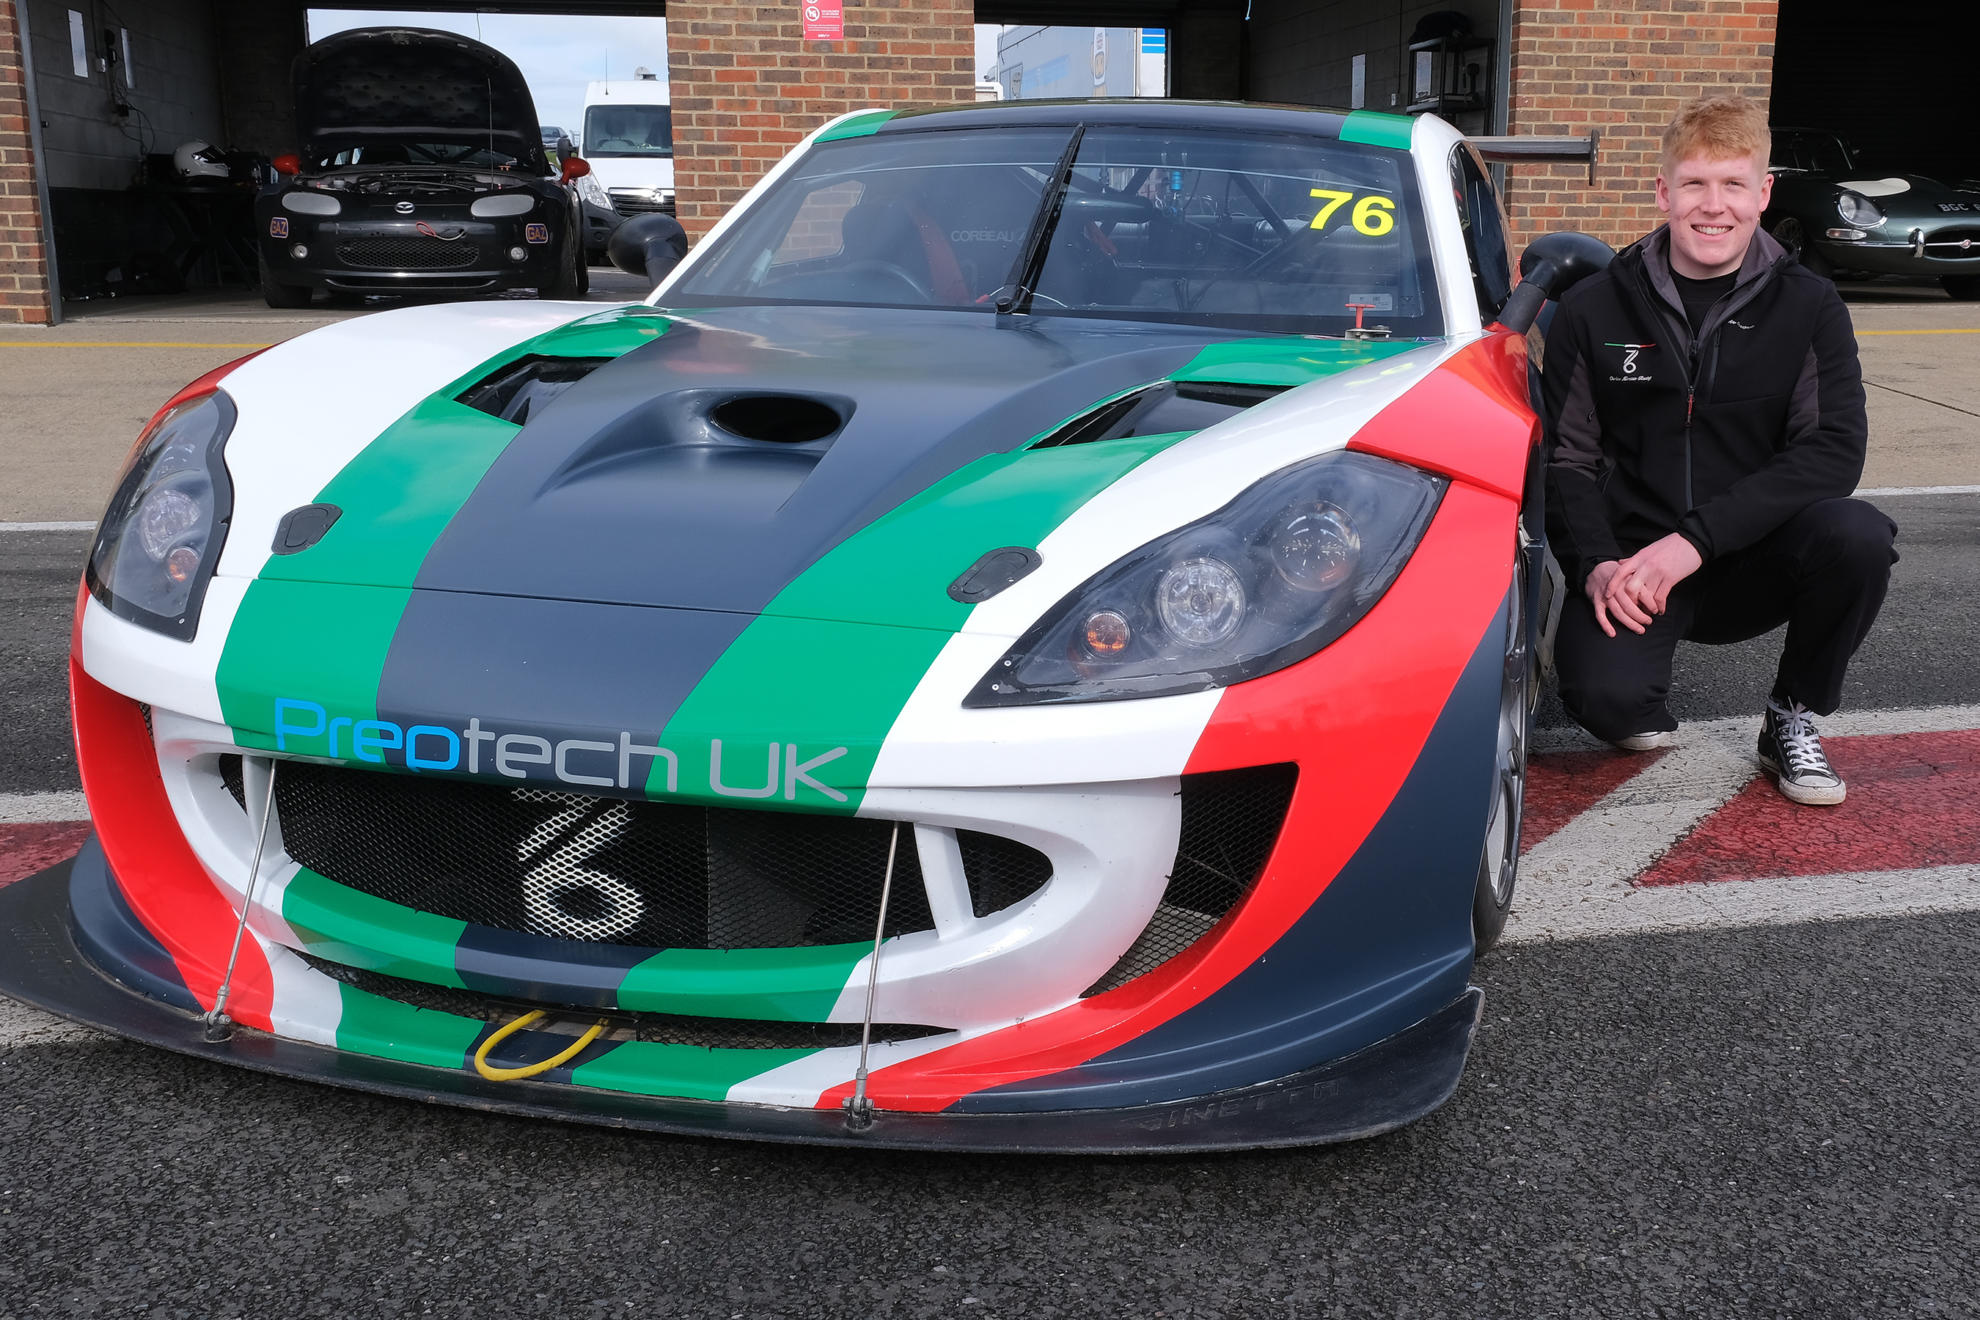 Miracco Teams With Preptech UK For Millers Oils Ginetta GT4 SuperCup Return